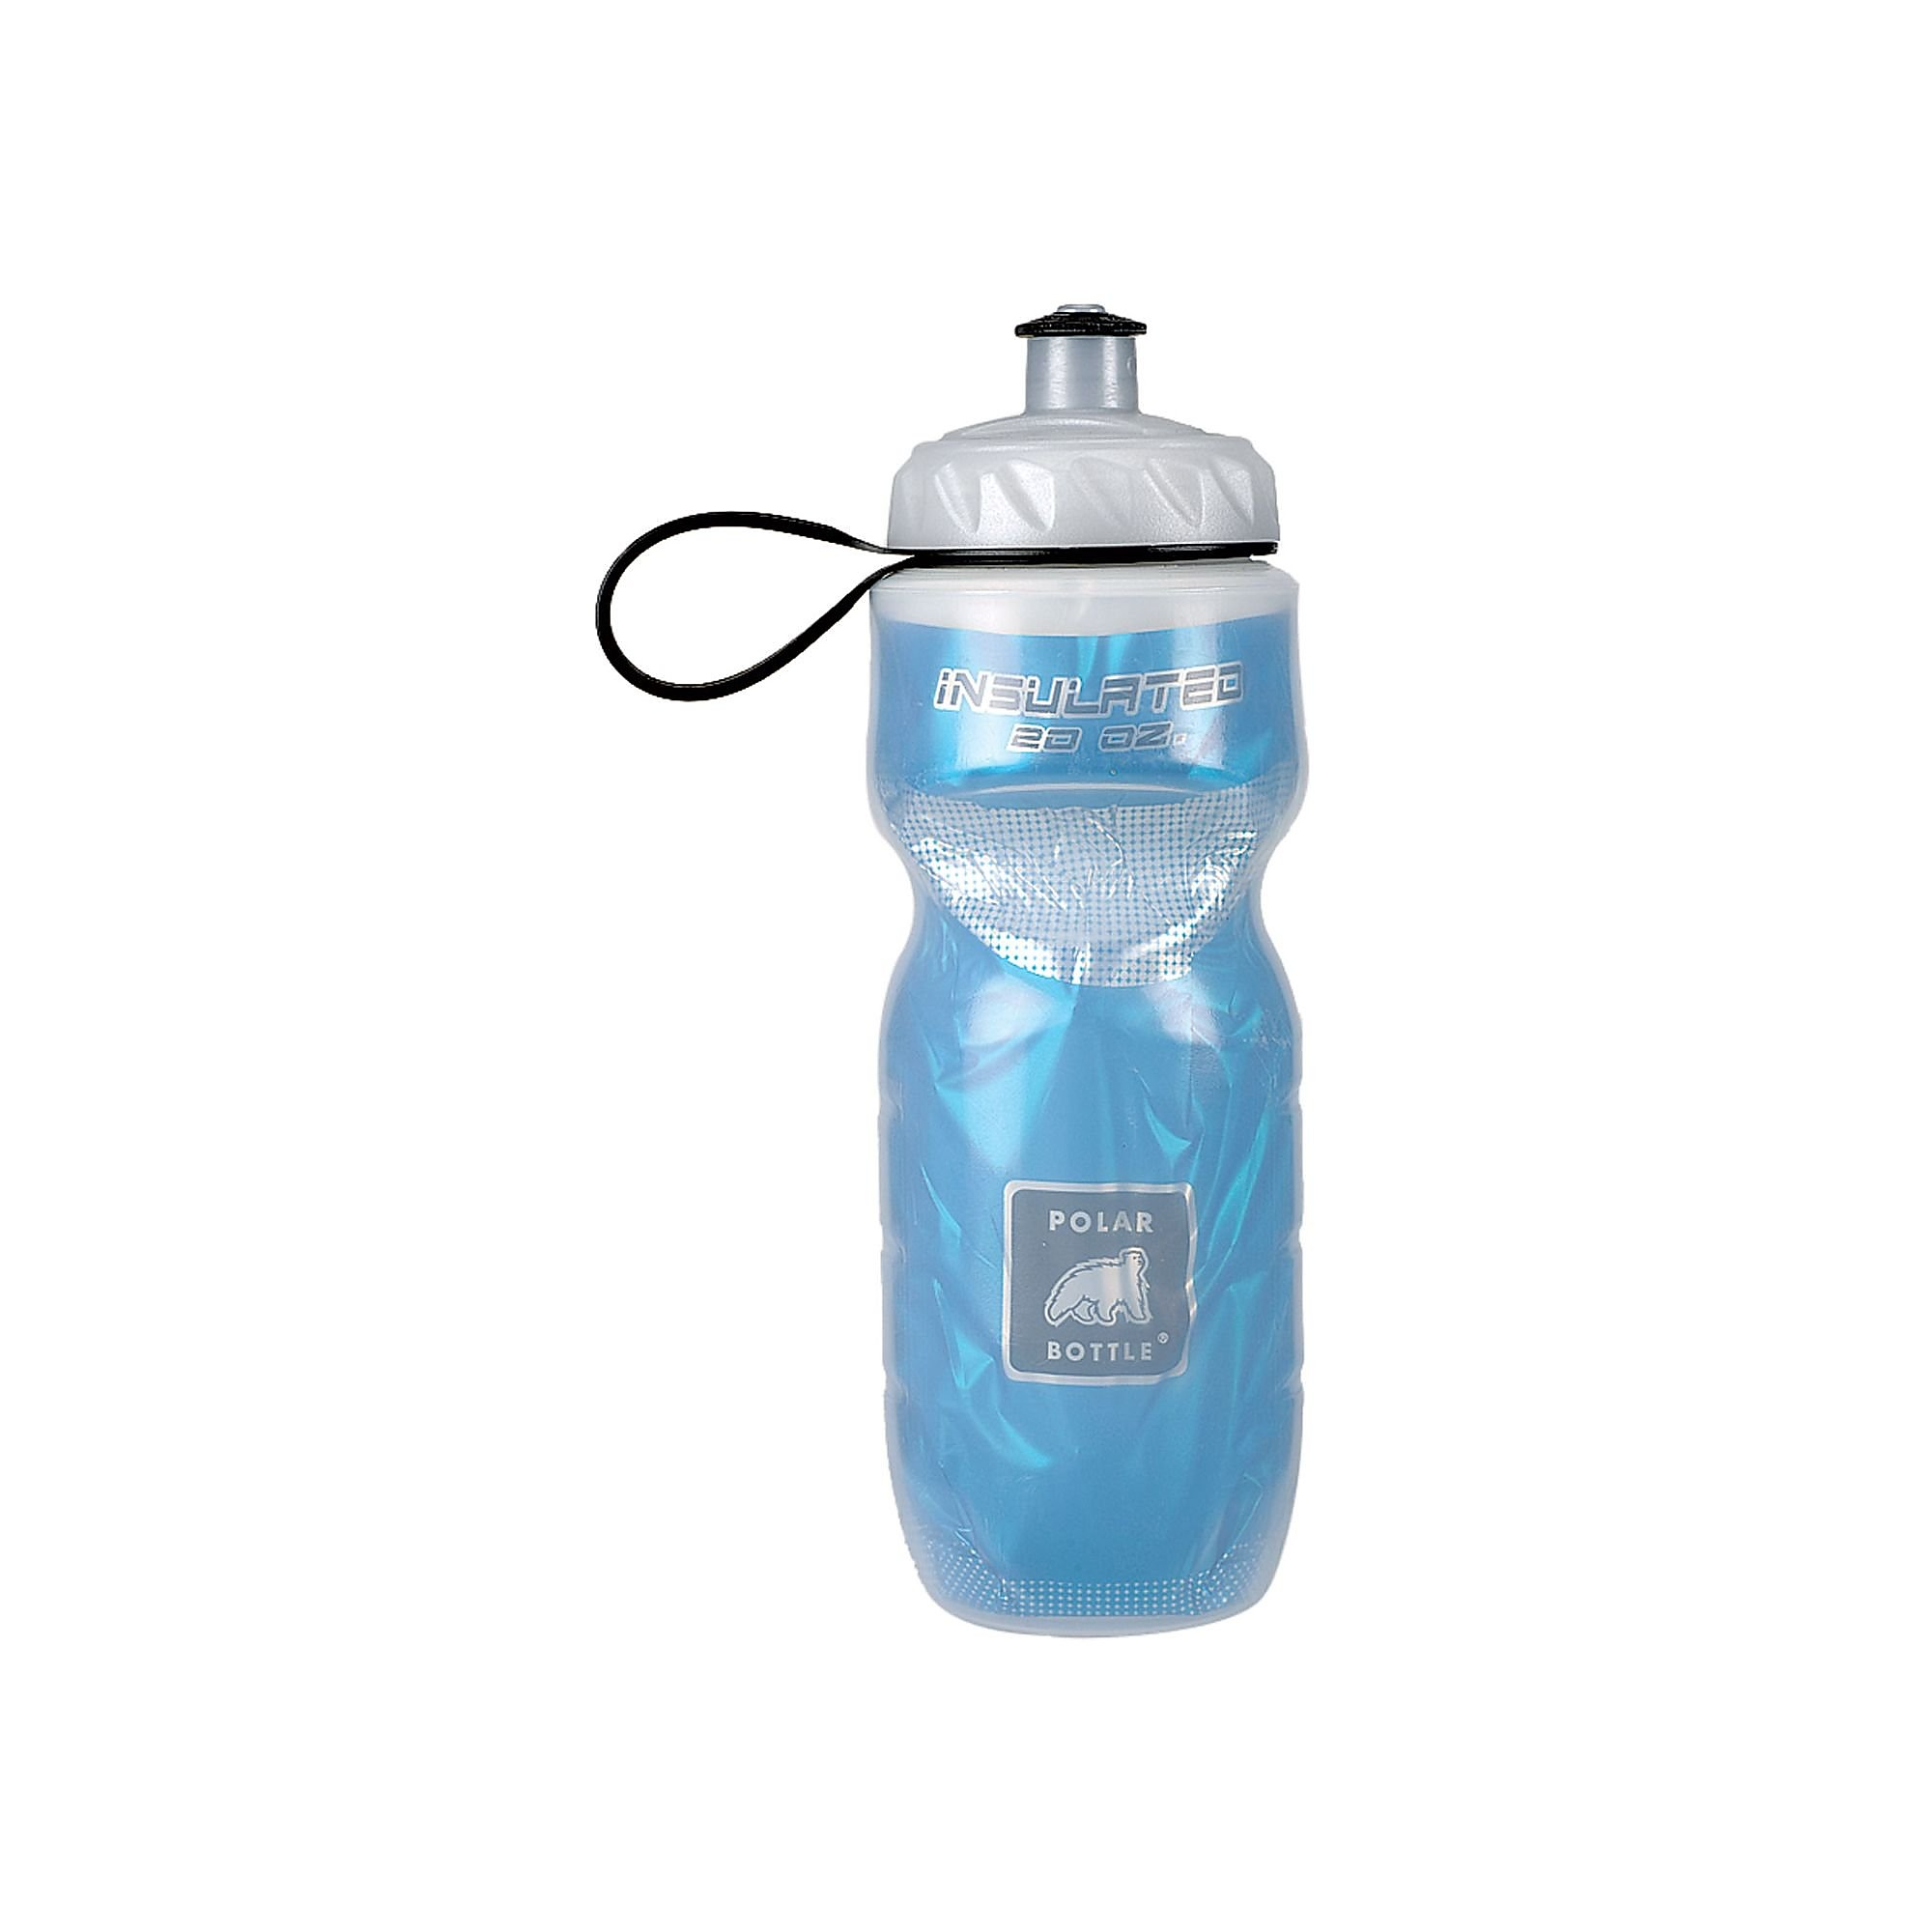 POLAR BOTTLE POLAR BOTTLE 0,5 LITER